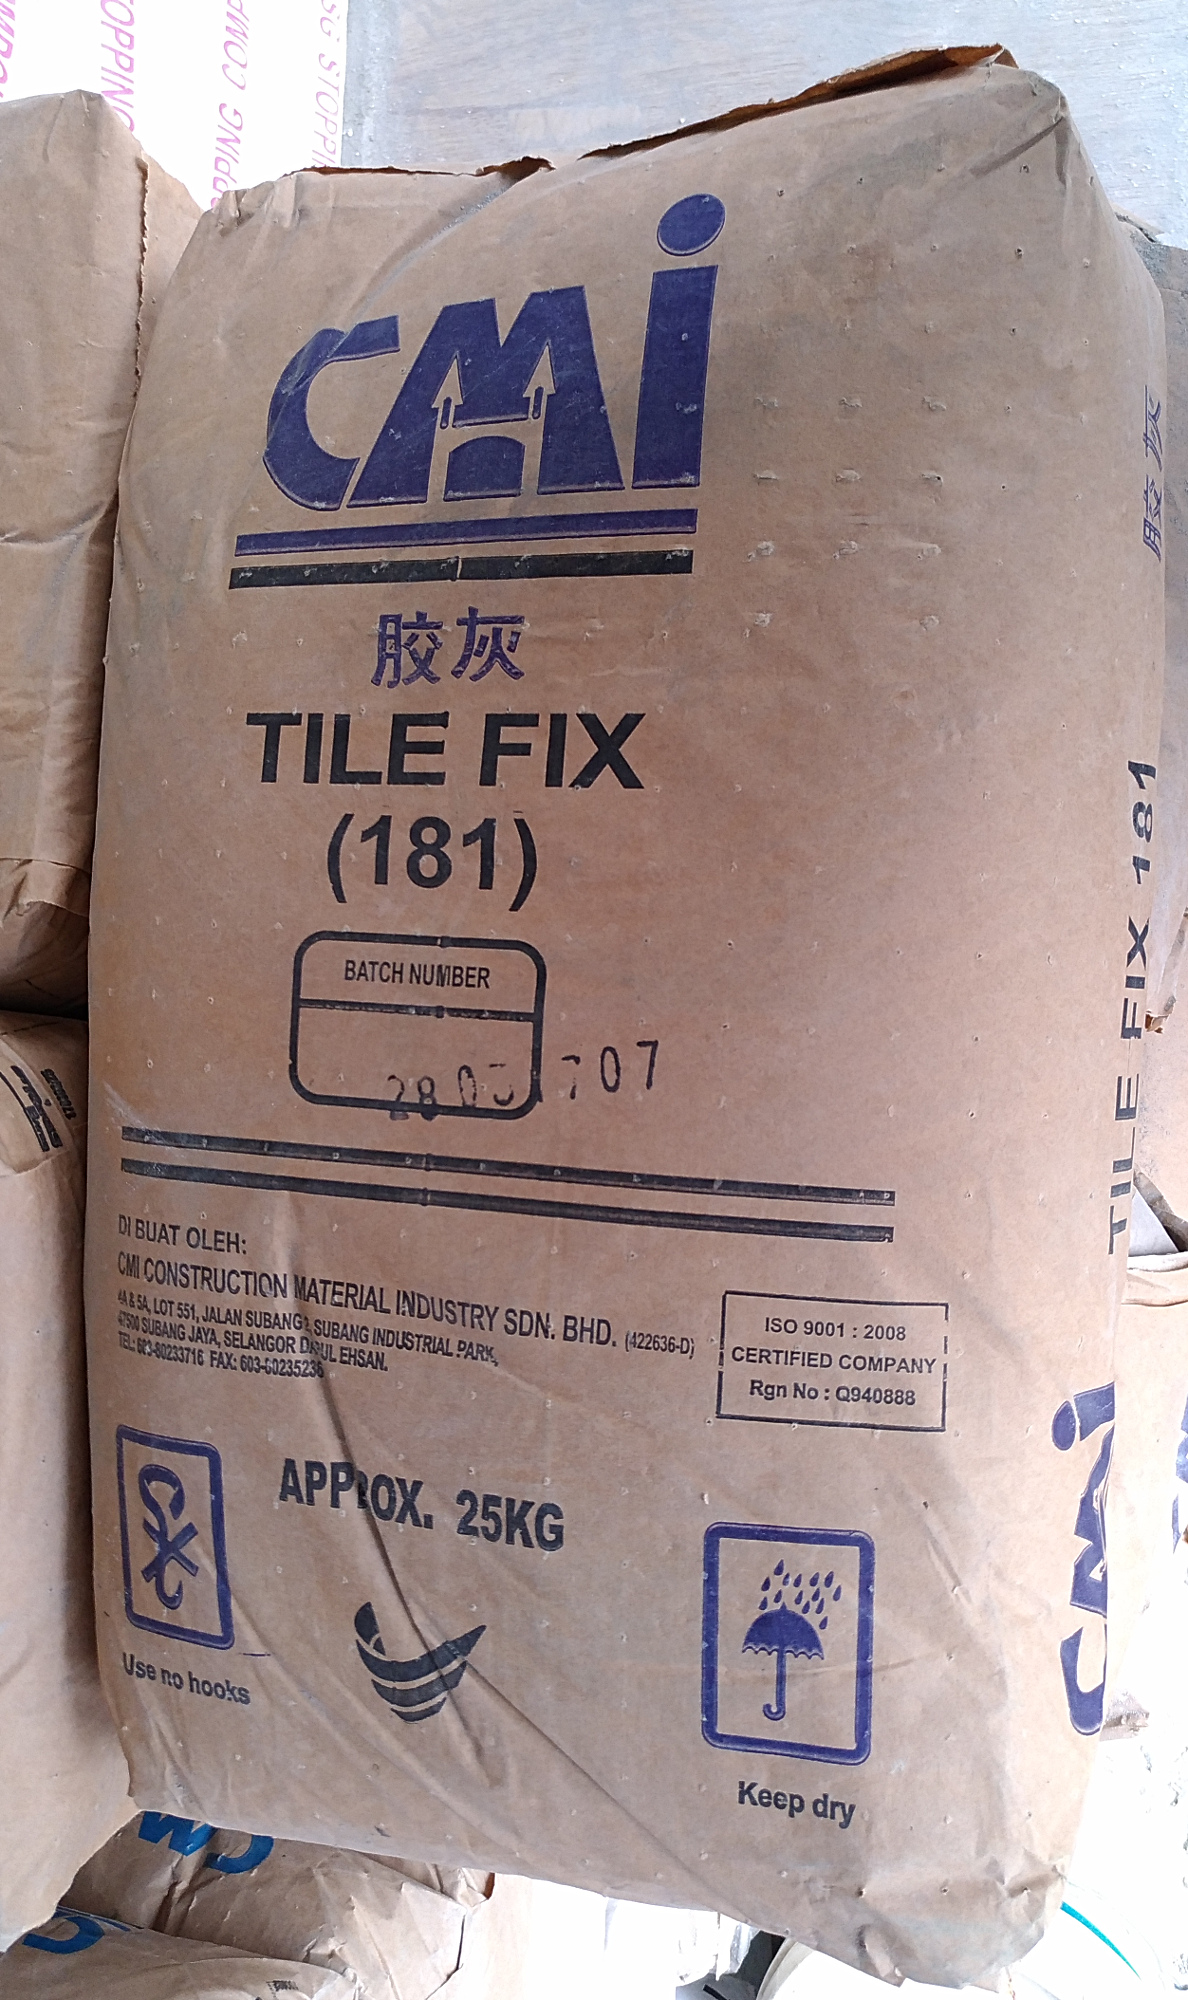 At A Neighborhood Hardware I Saw Bag Of Cement Not The Normal Portland But One More Suitable For My Job Tile